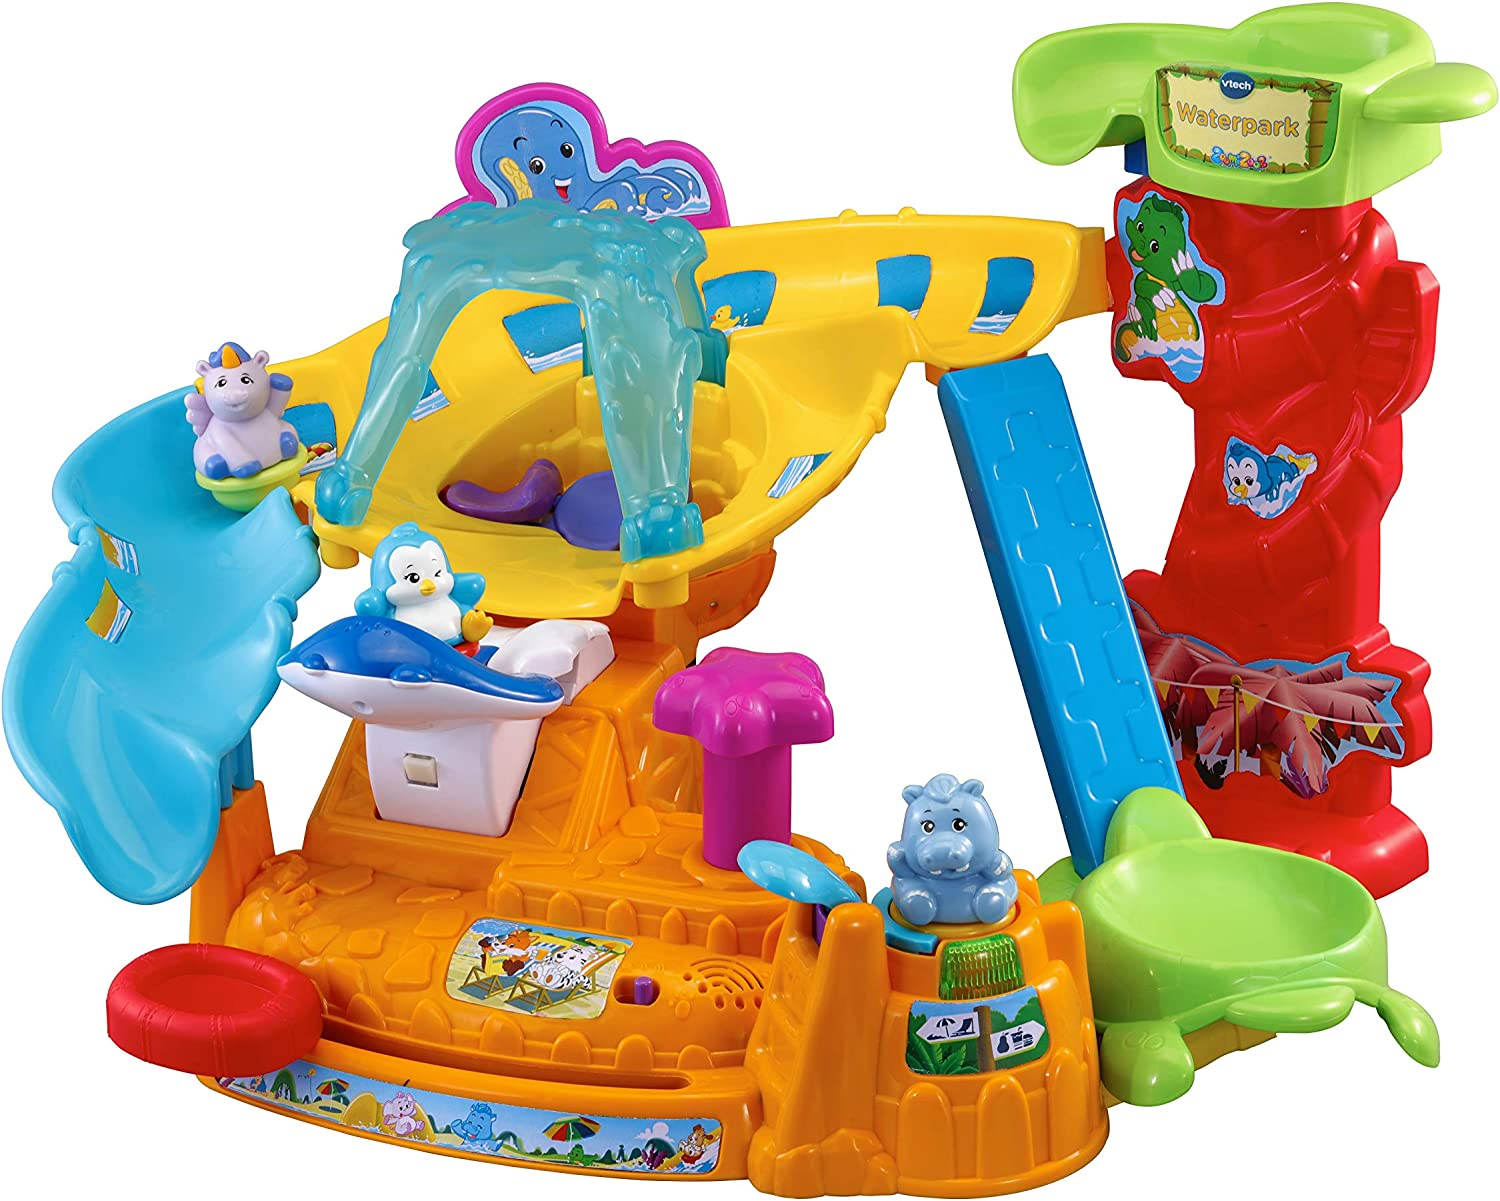 VTech ZoomiZoos Water Park Interactive Animal Baby Play Set 33% OFF £26.99 @ Amazon